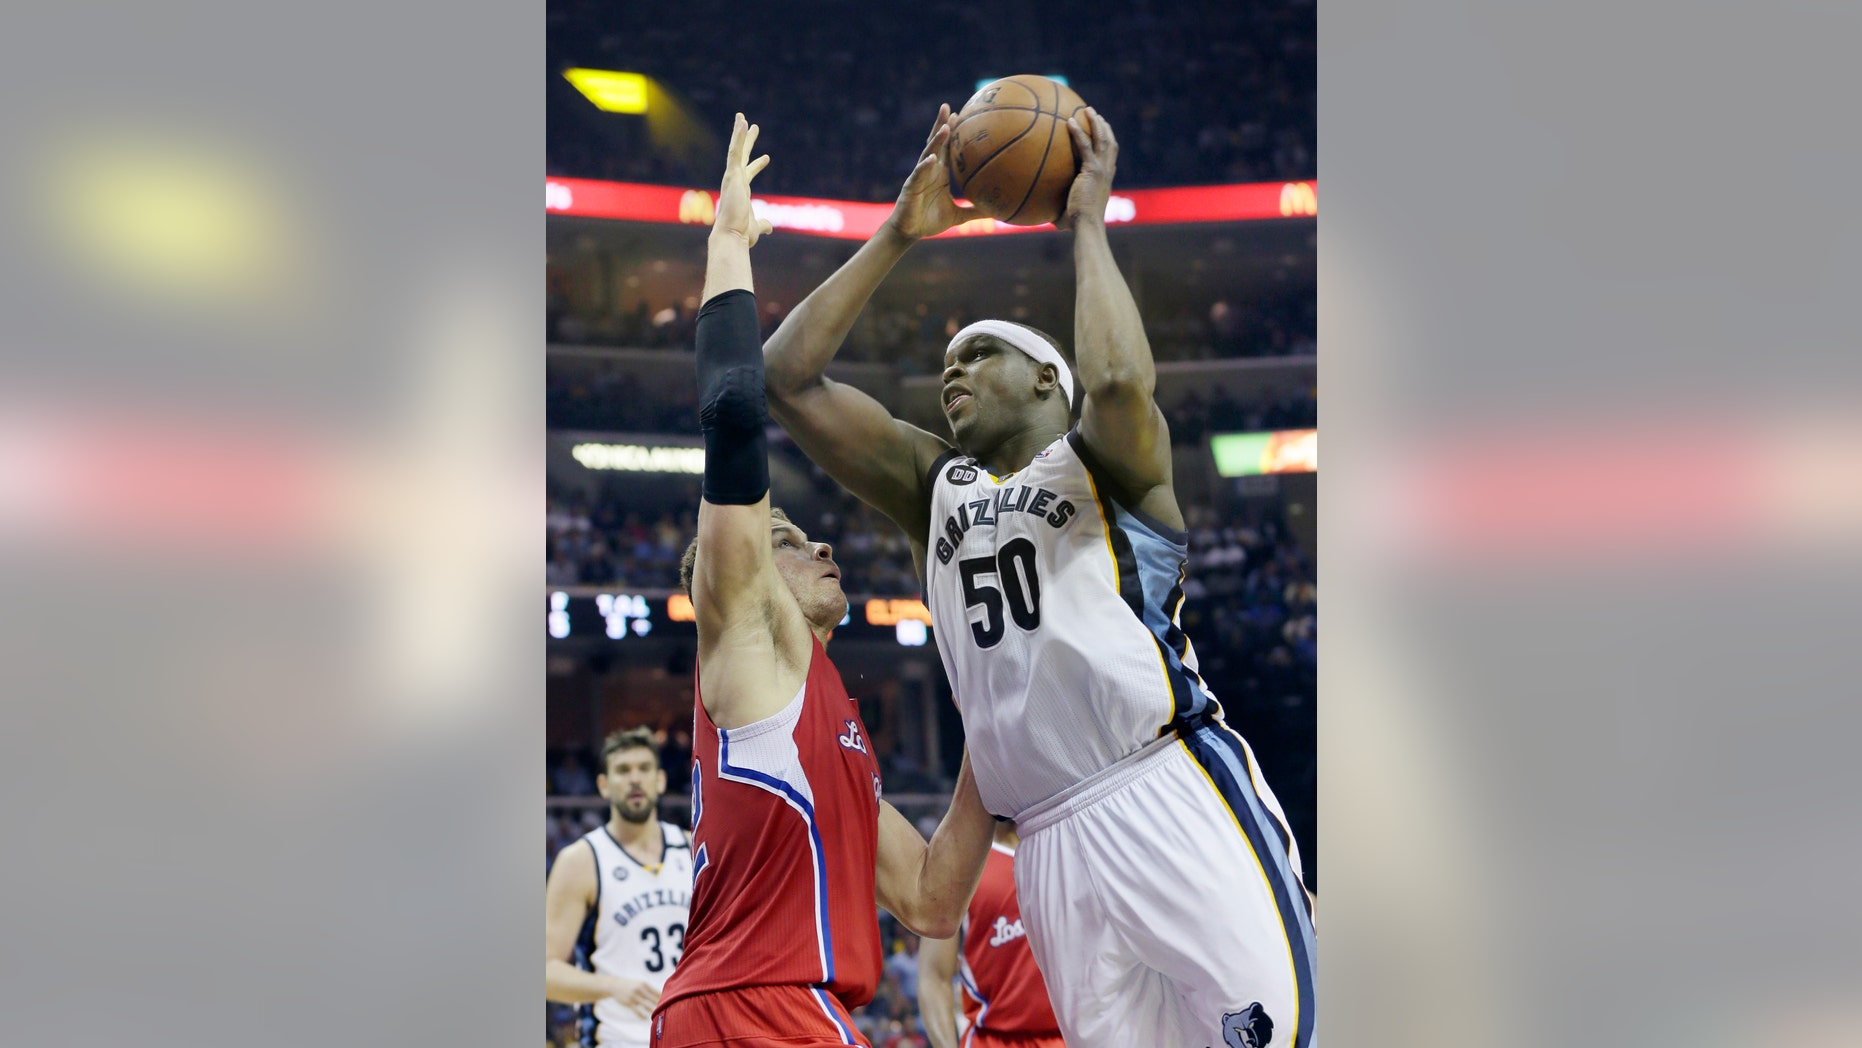 Memphis Grizzlies' Zach Randolph (50) shoots over Los Angeles Clippers' Blake Griffin during the second half of Game 4 in a first-round NBA basketball playoff series in Memphis, Tenn., Saturday, April 27, 2013. The Grizzlies defeated the Clippers 104-83. (AP Photo/Danny Johnston)